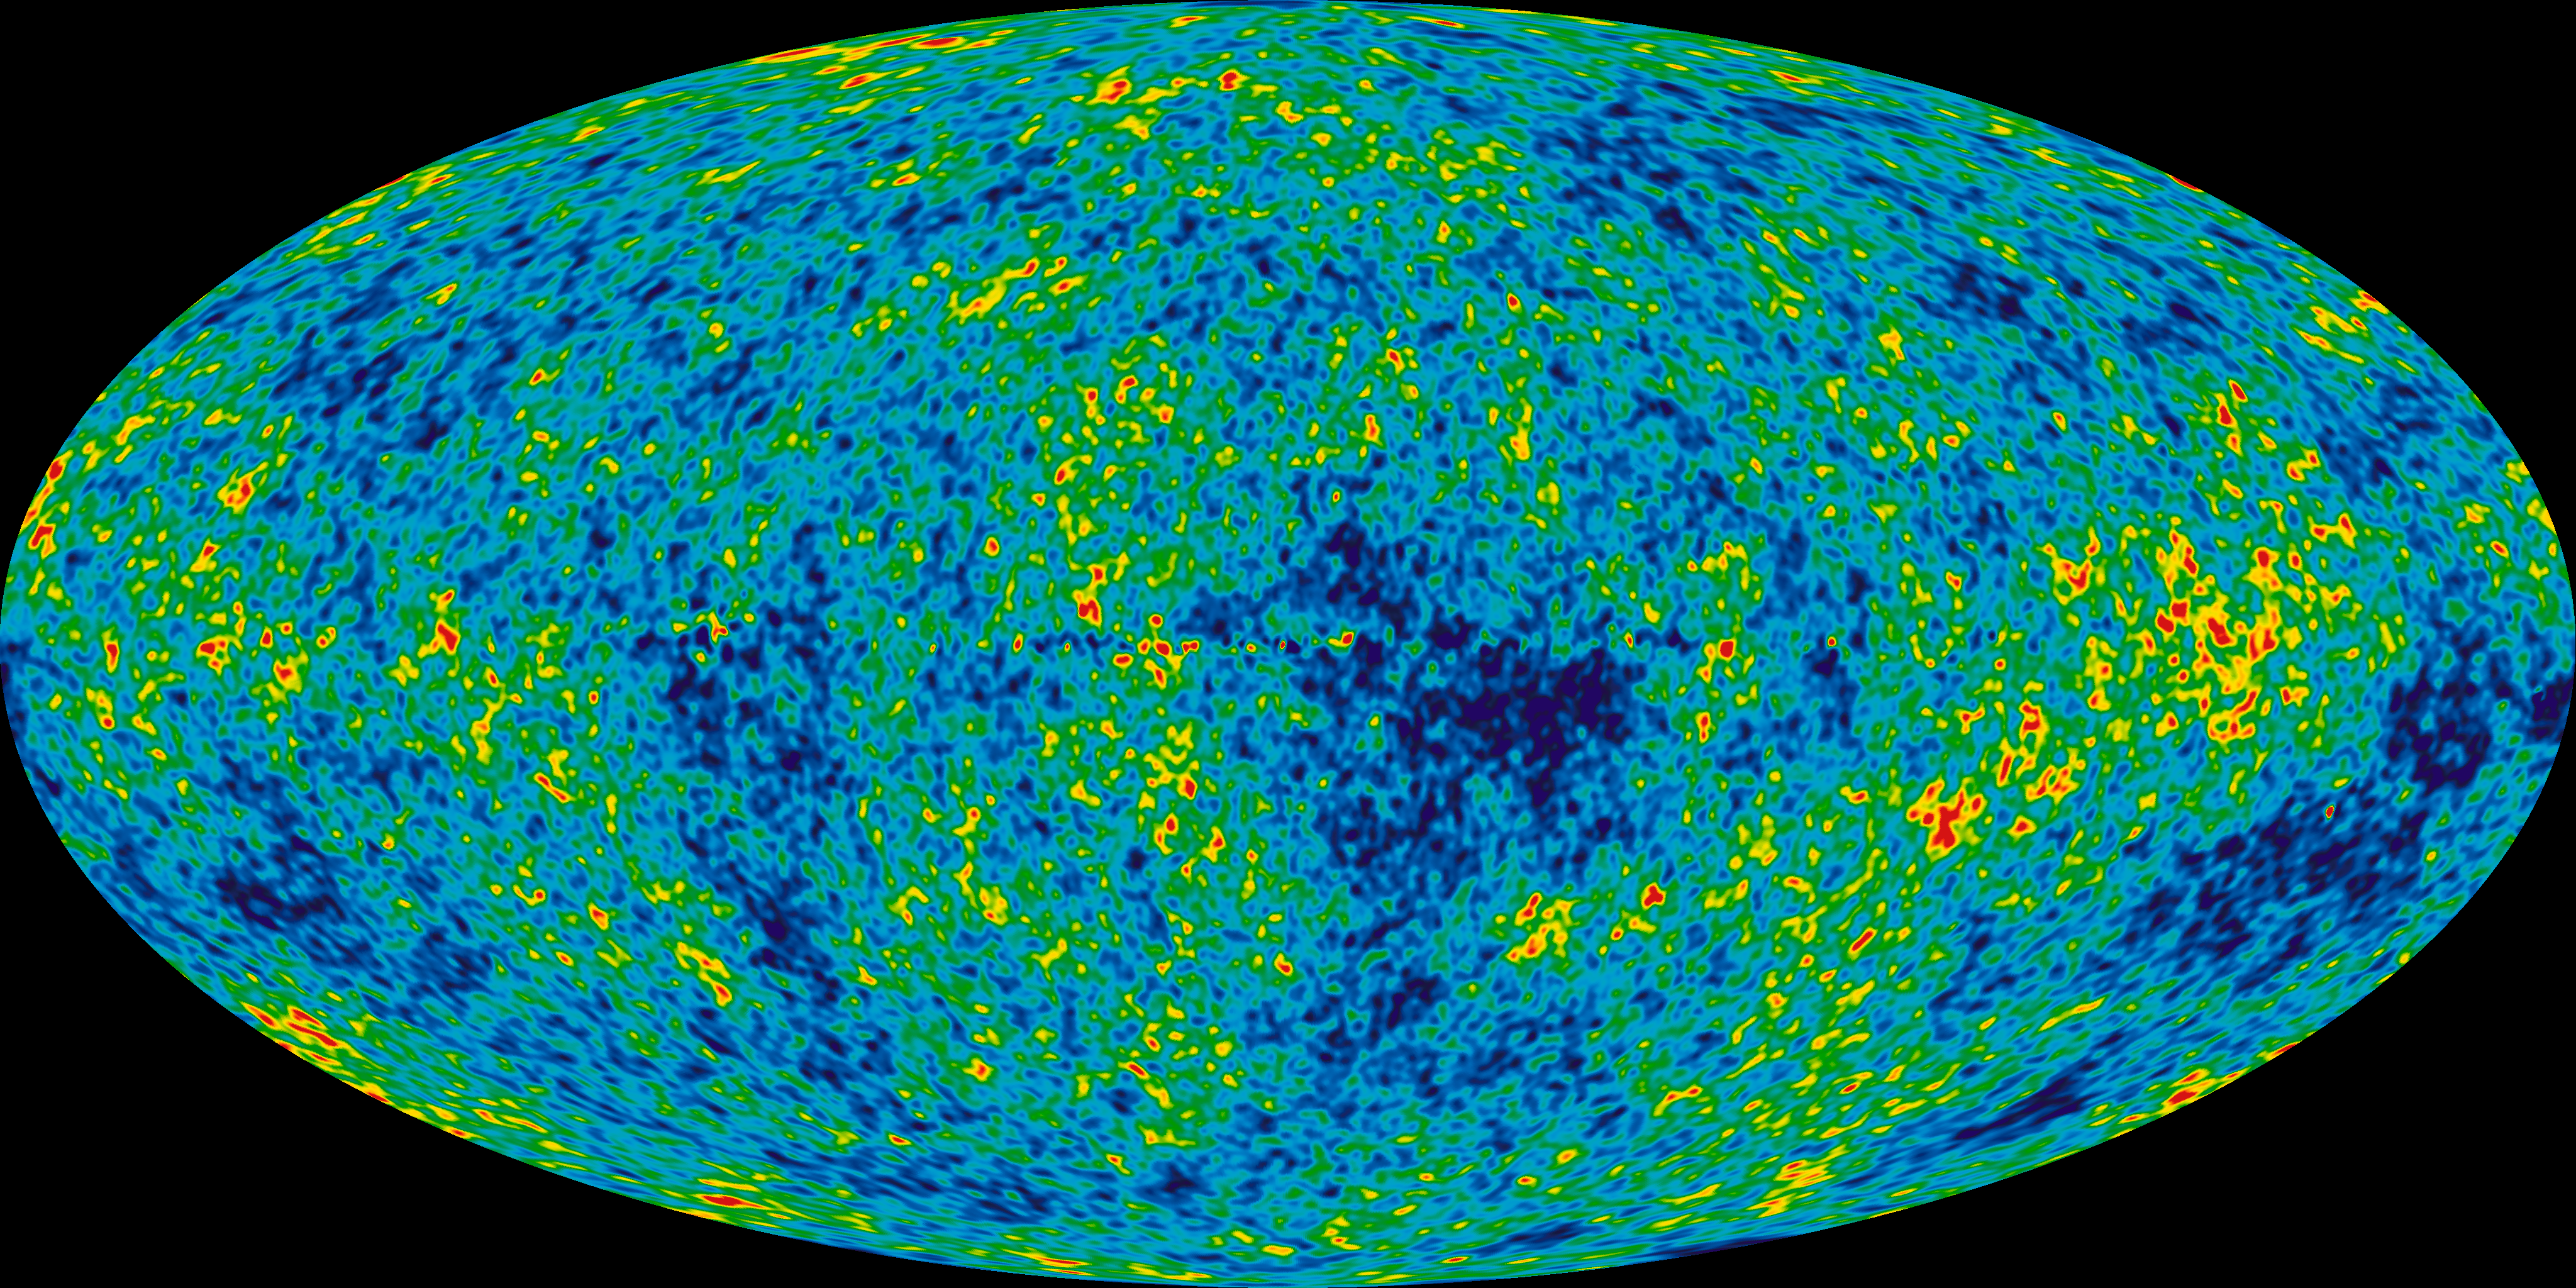 An ellipse is filled with speckled dark blue, green, and small yellow and red splotches.